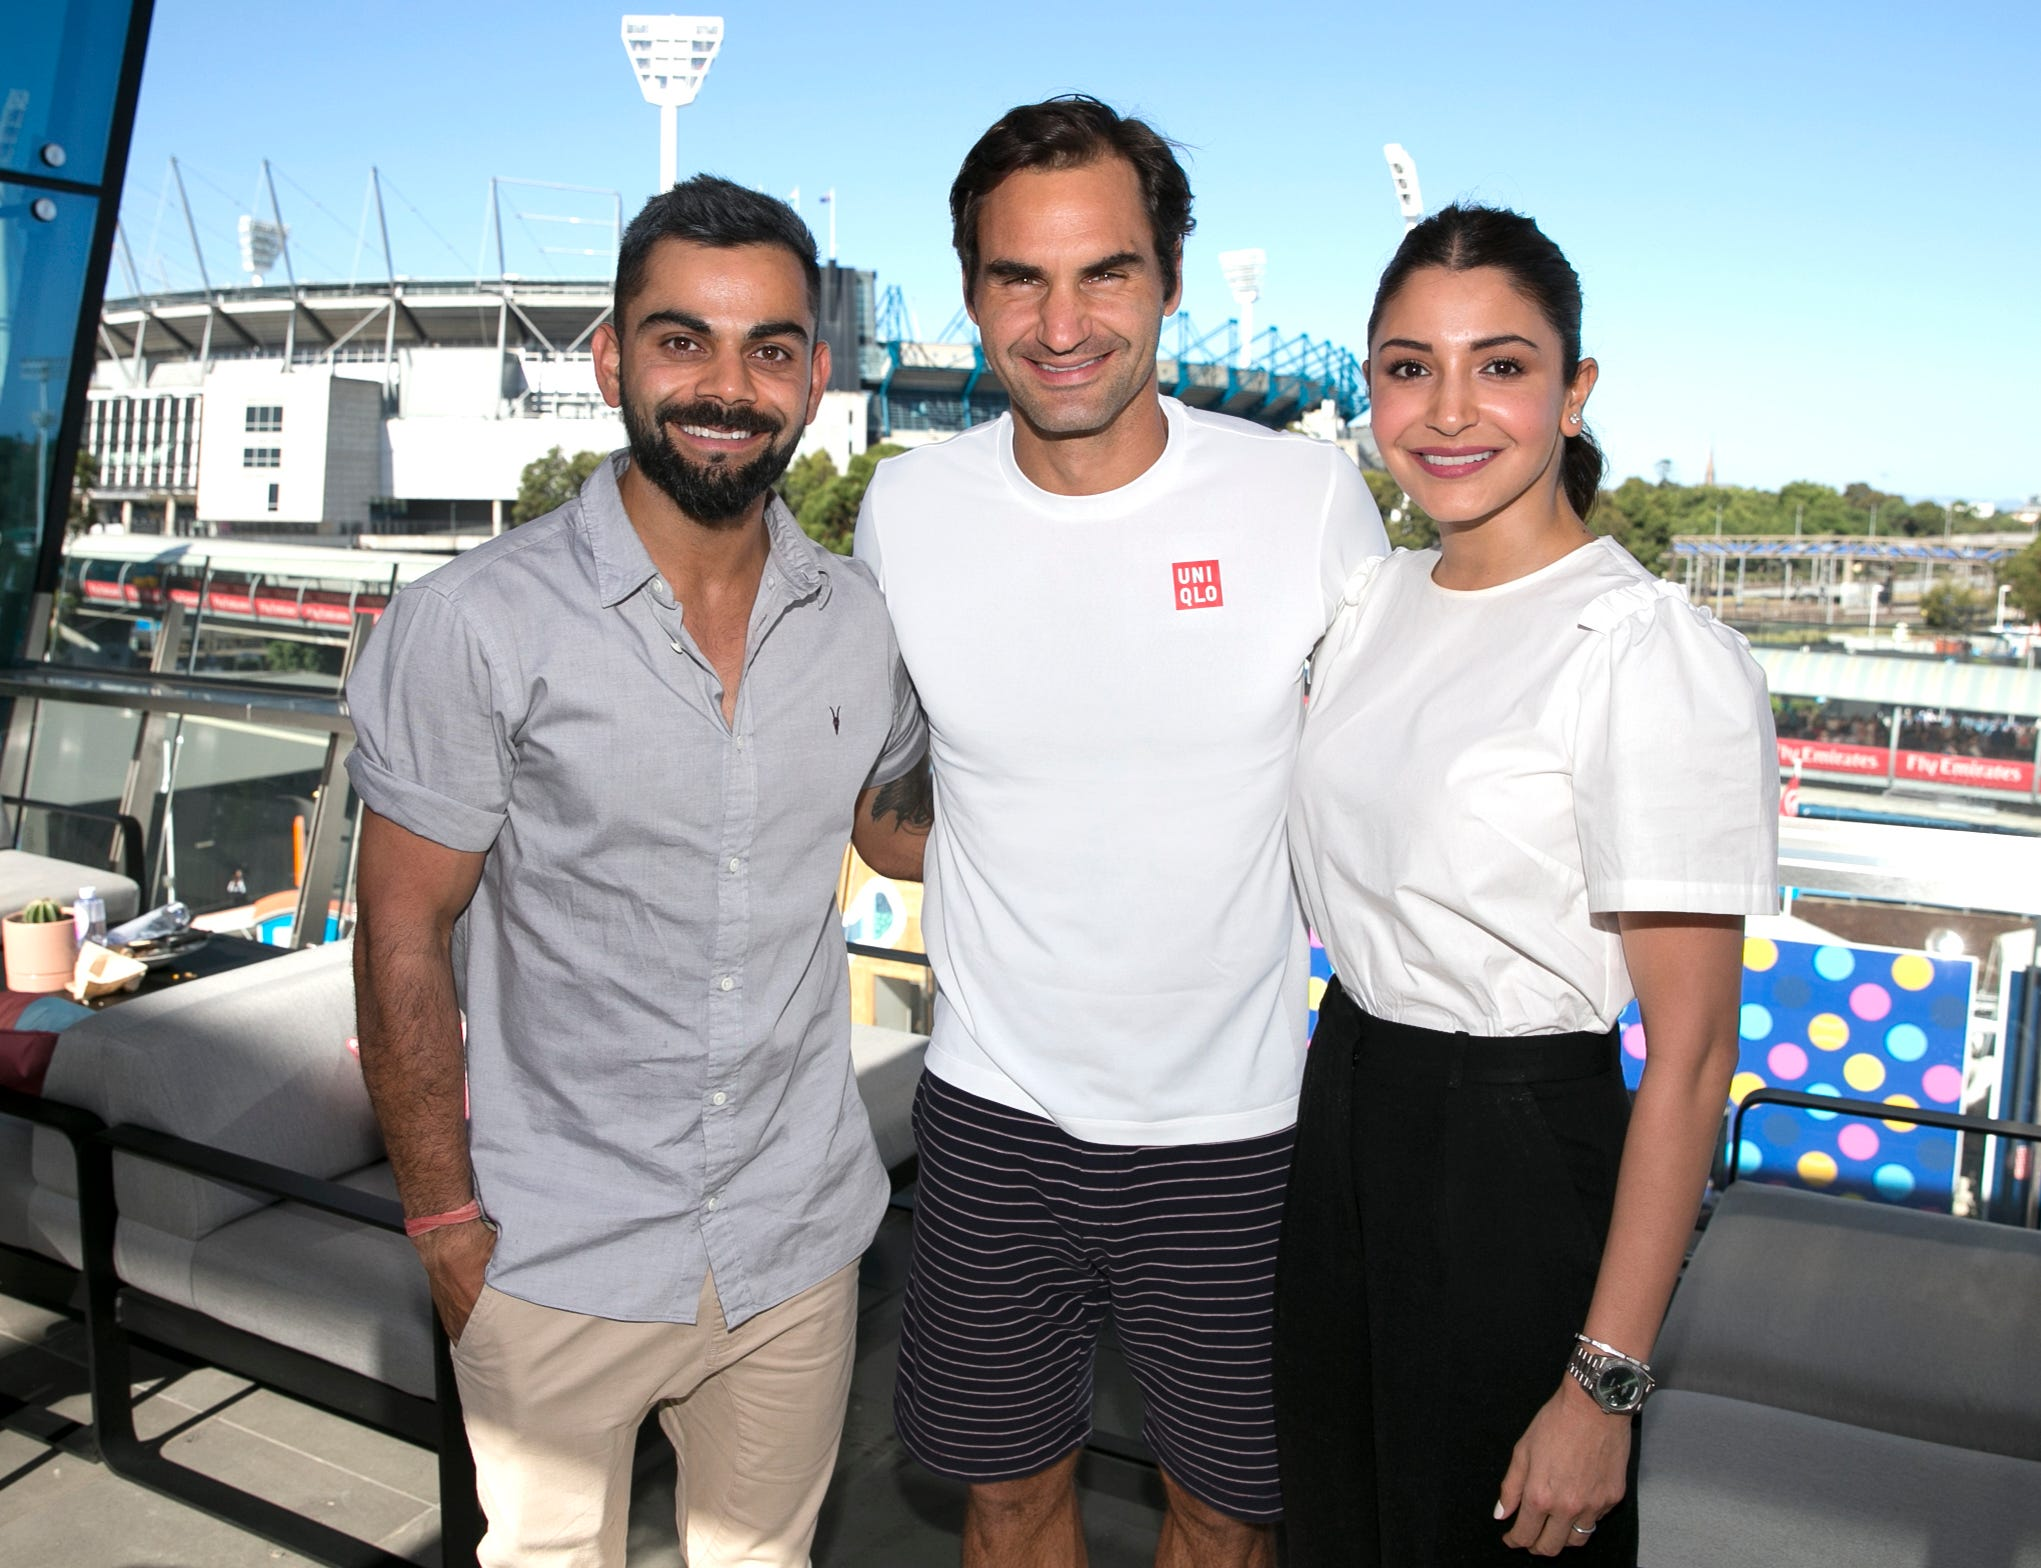 The Latest: Cricket star Kohli meets Federer at Aussie Open